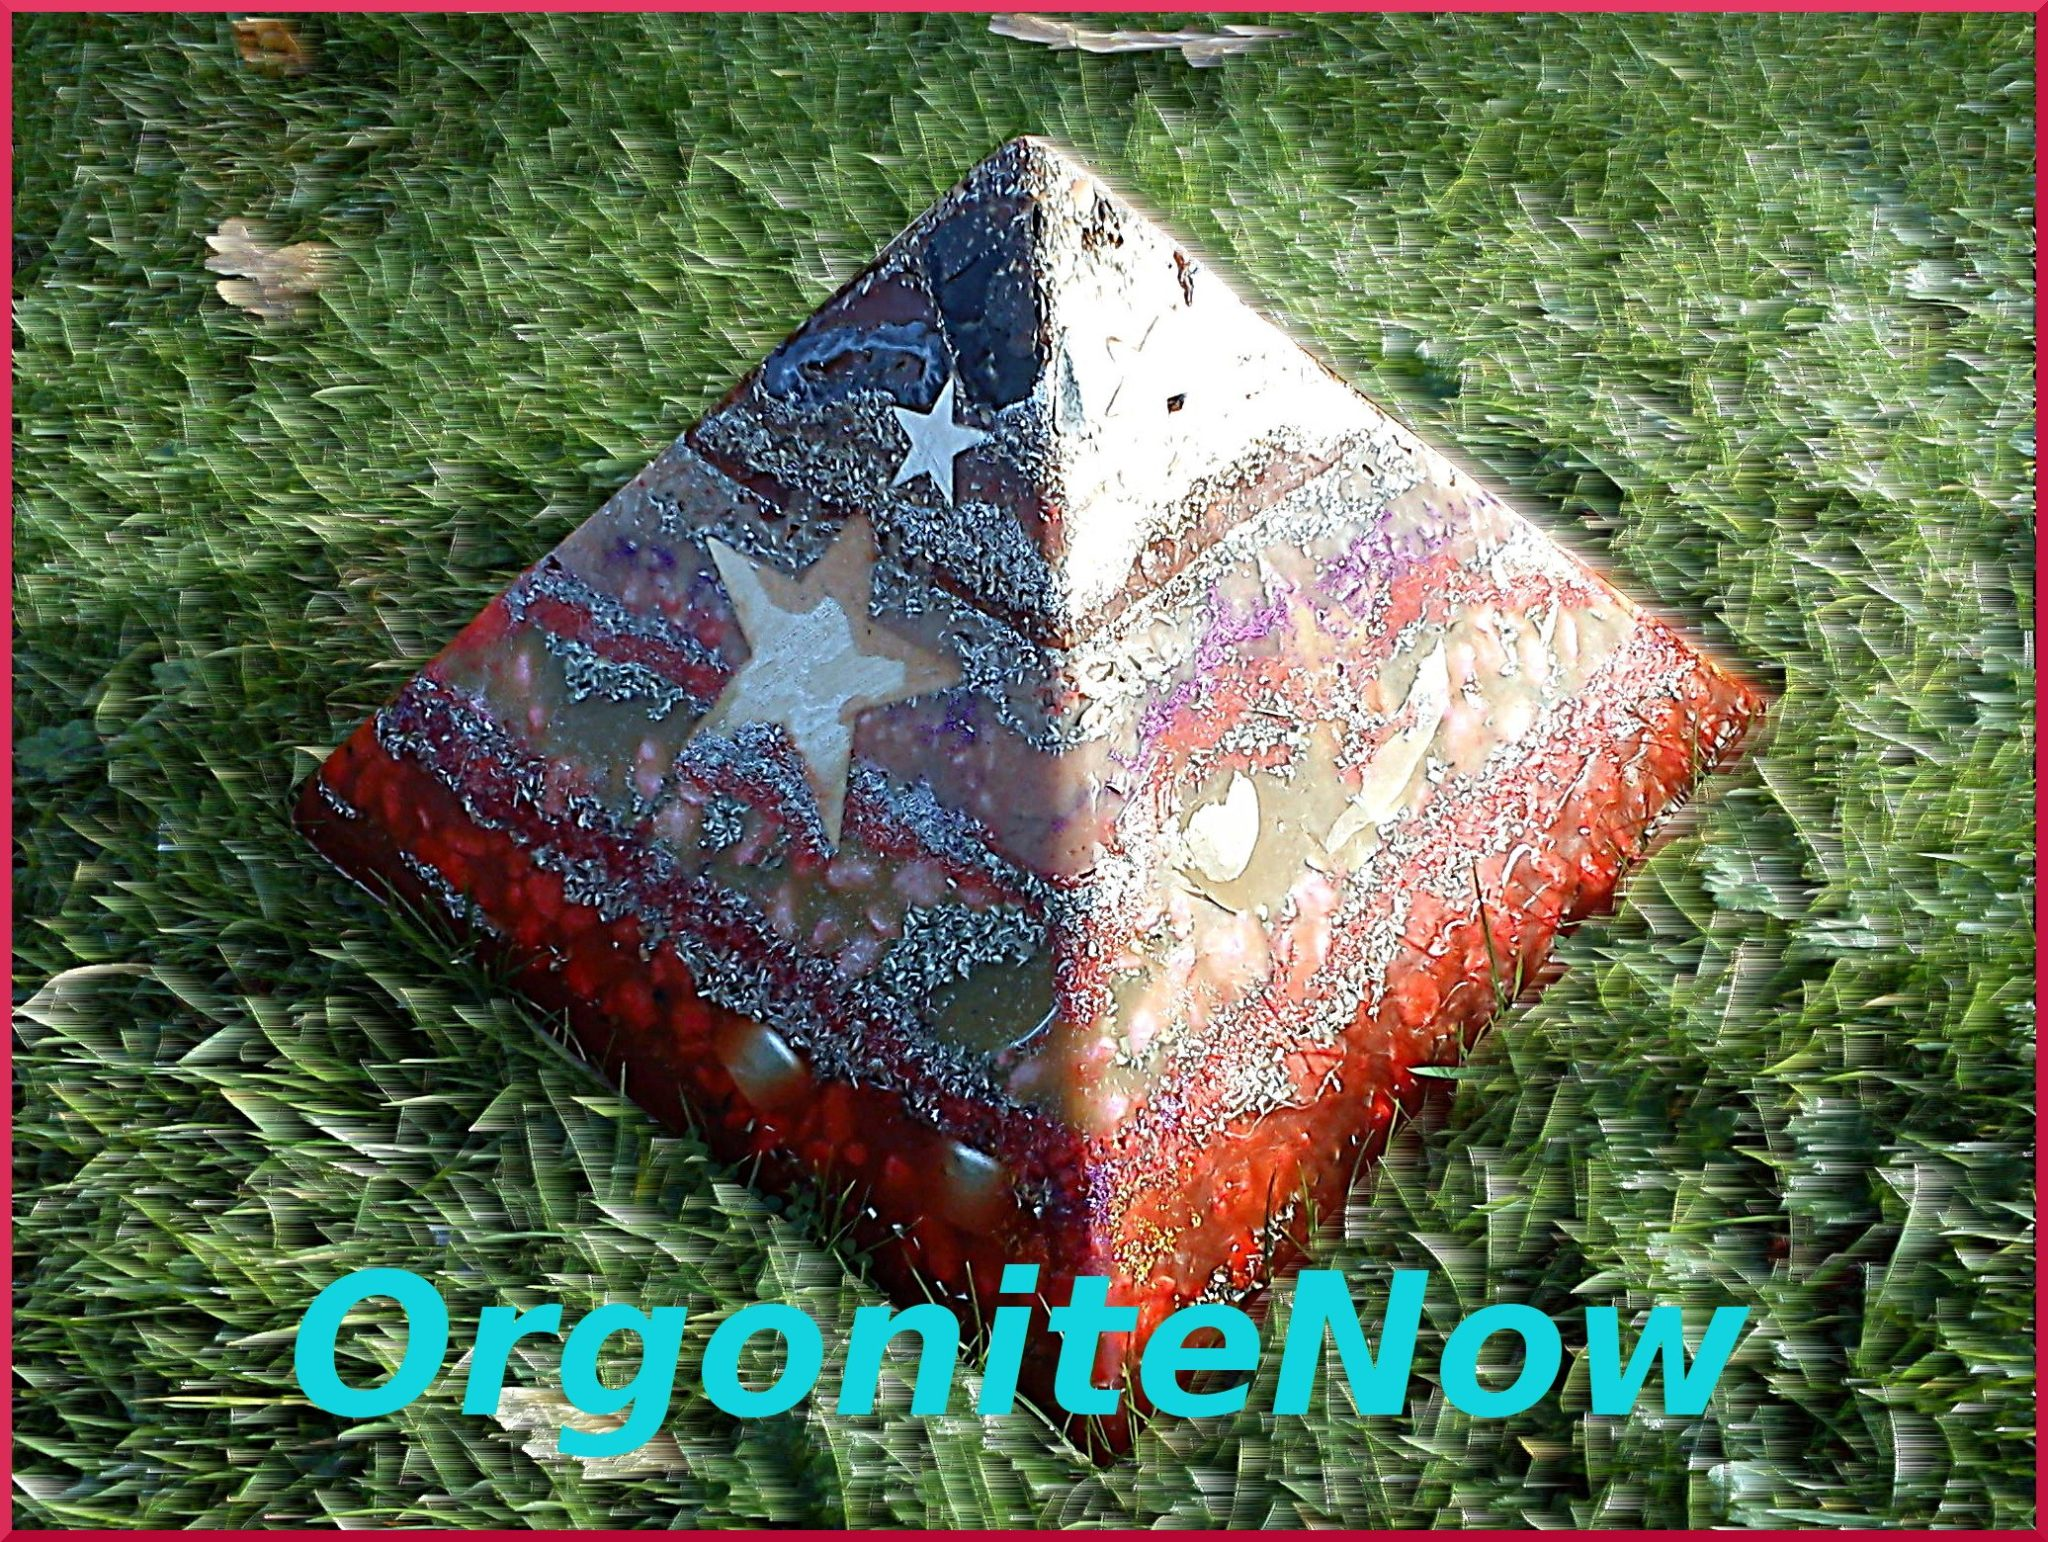 Orgonite now, de nieuwe site van Orgonite-Mareksheran